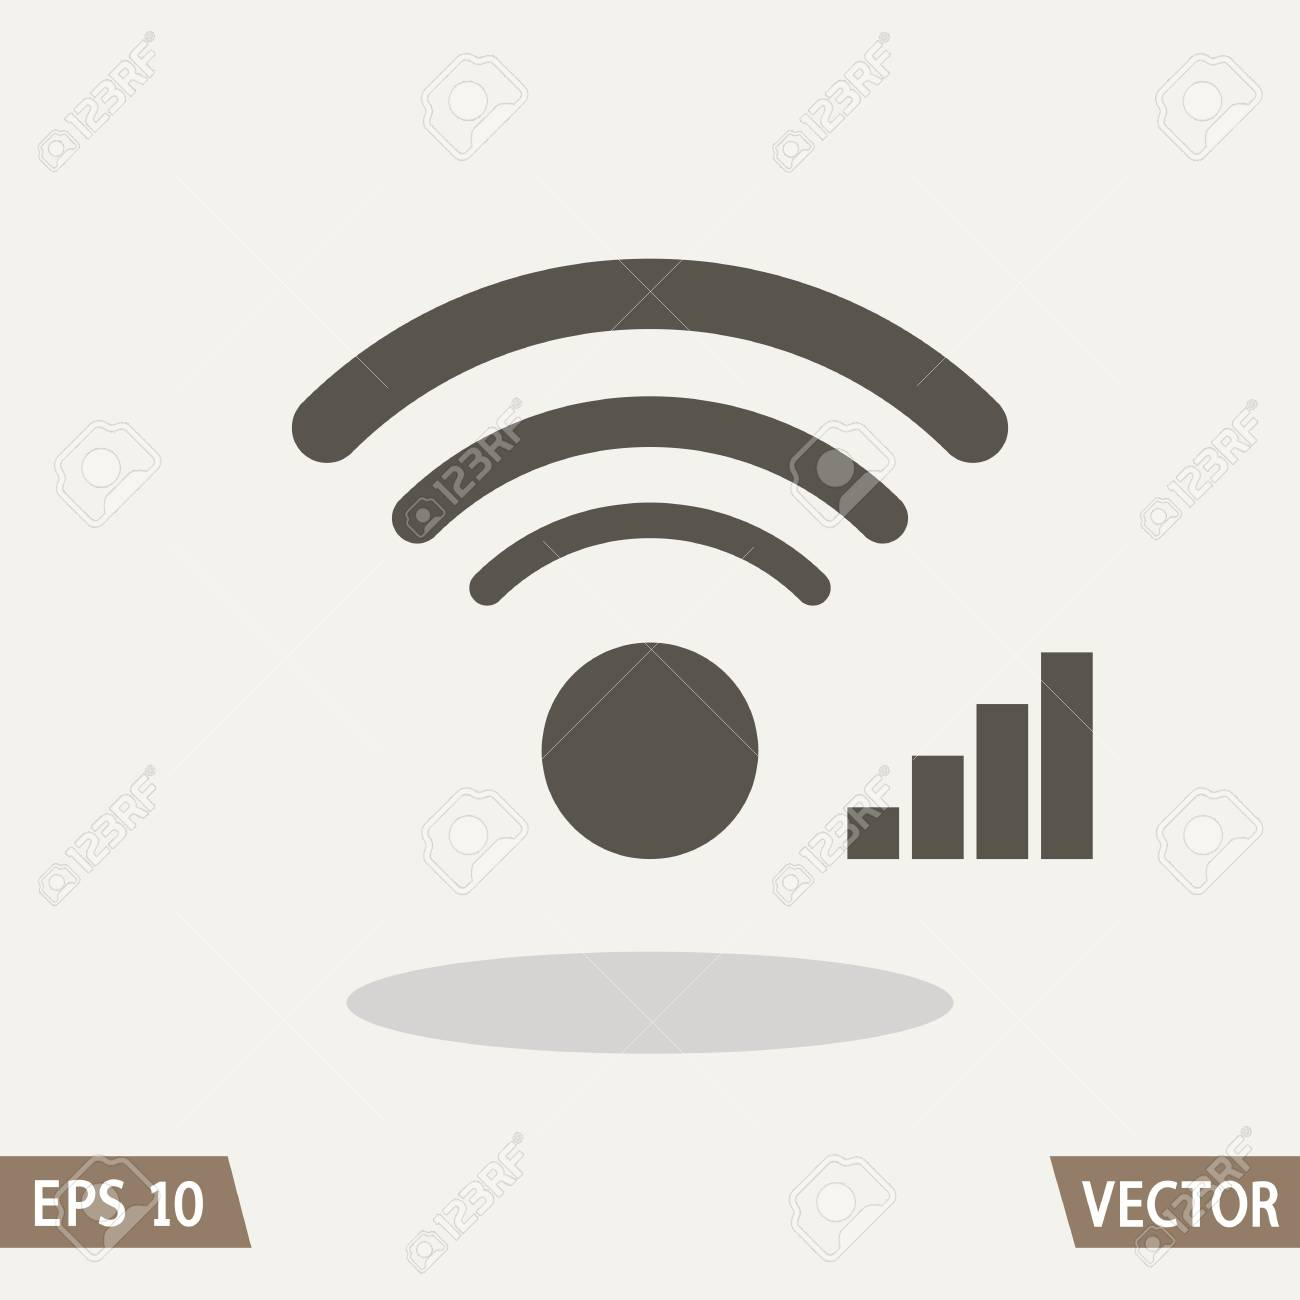 wifi and signal level icons for websites or commercial use royalty